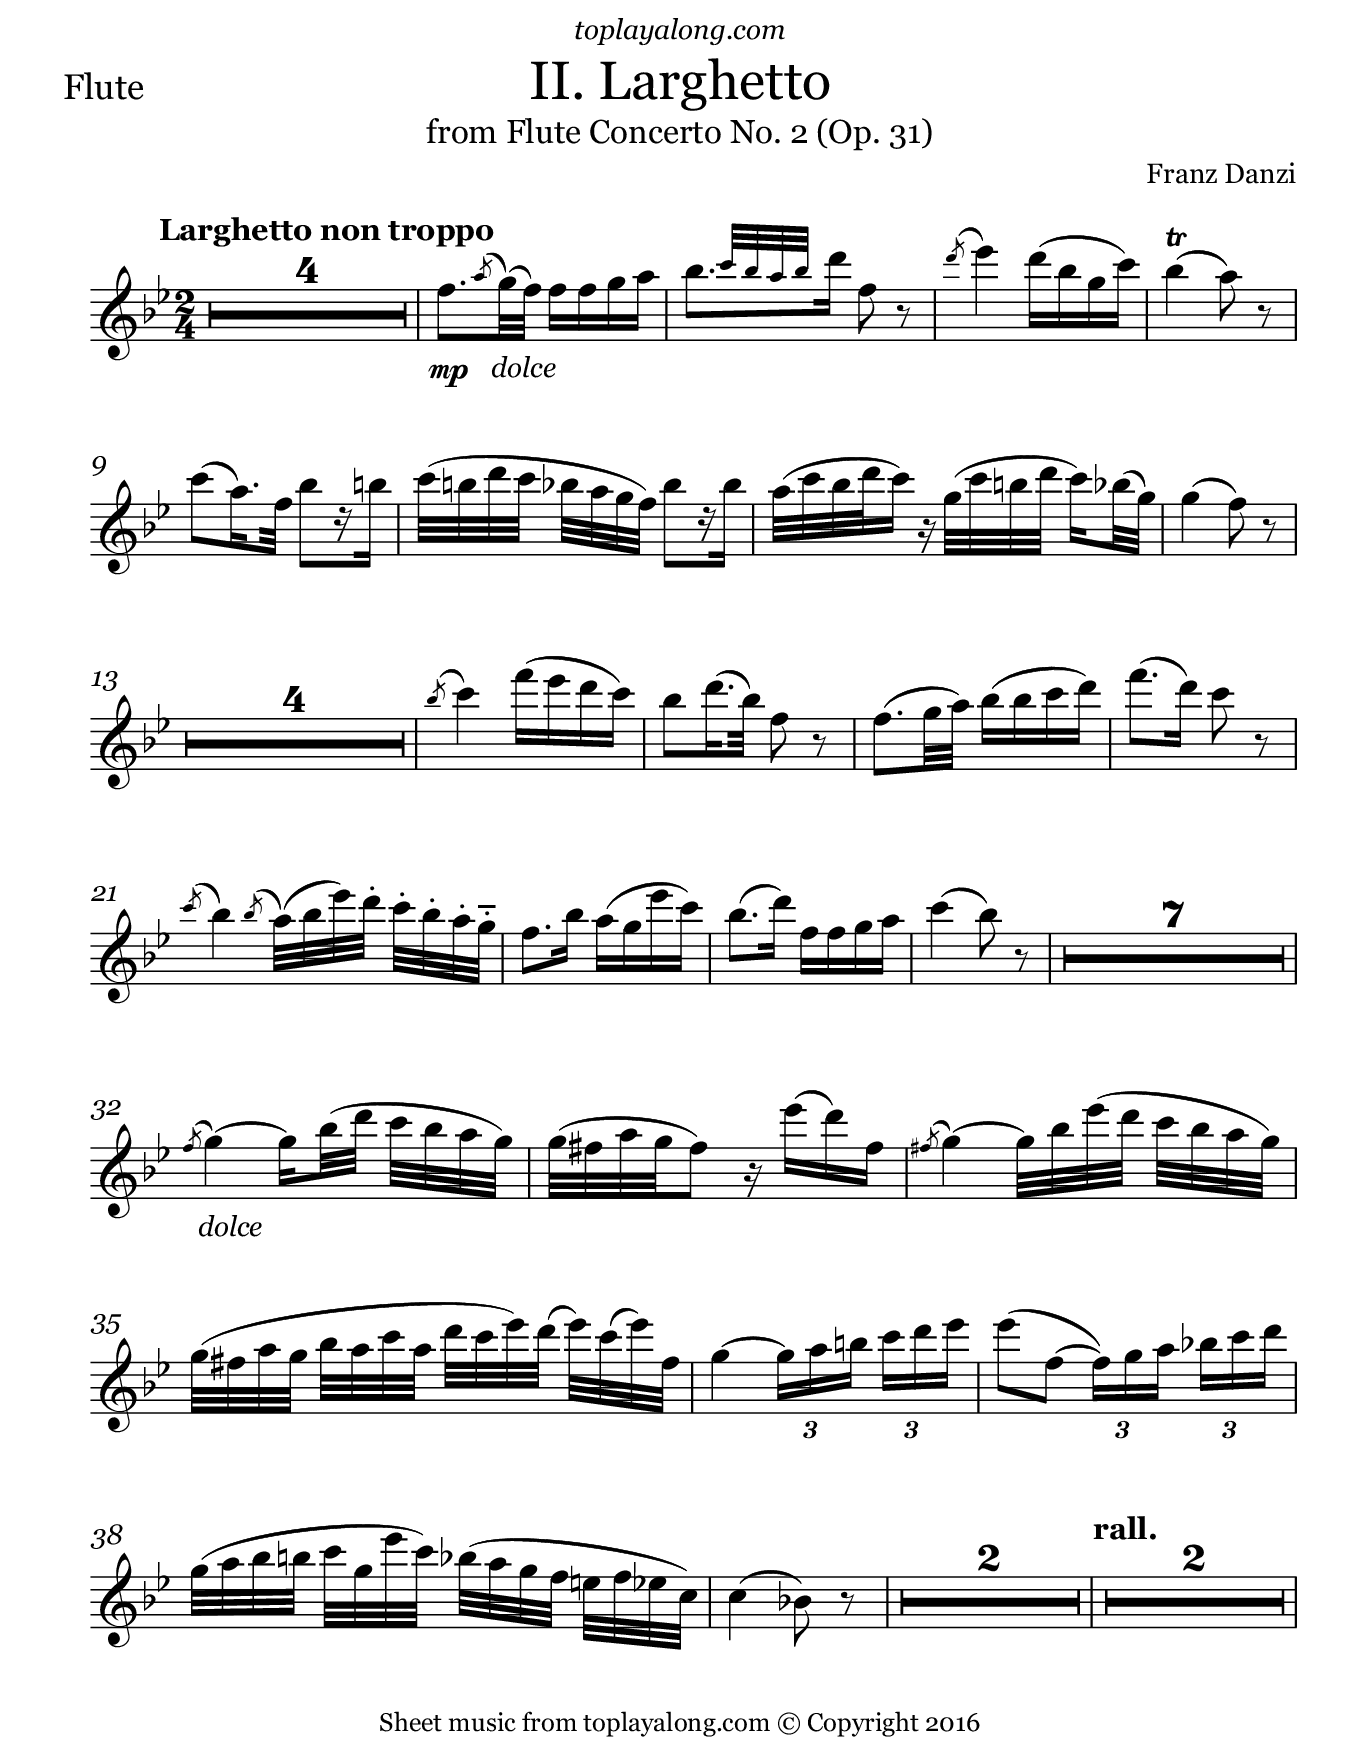 Flute Concerto No. 2 (II. Larghetto) by Danzi. Sheet music for Flute, page 1.